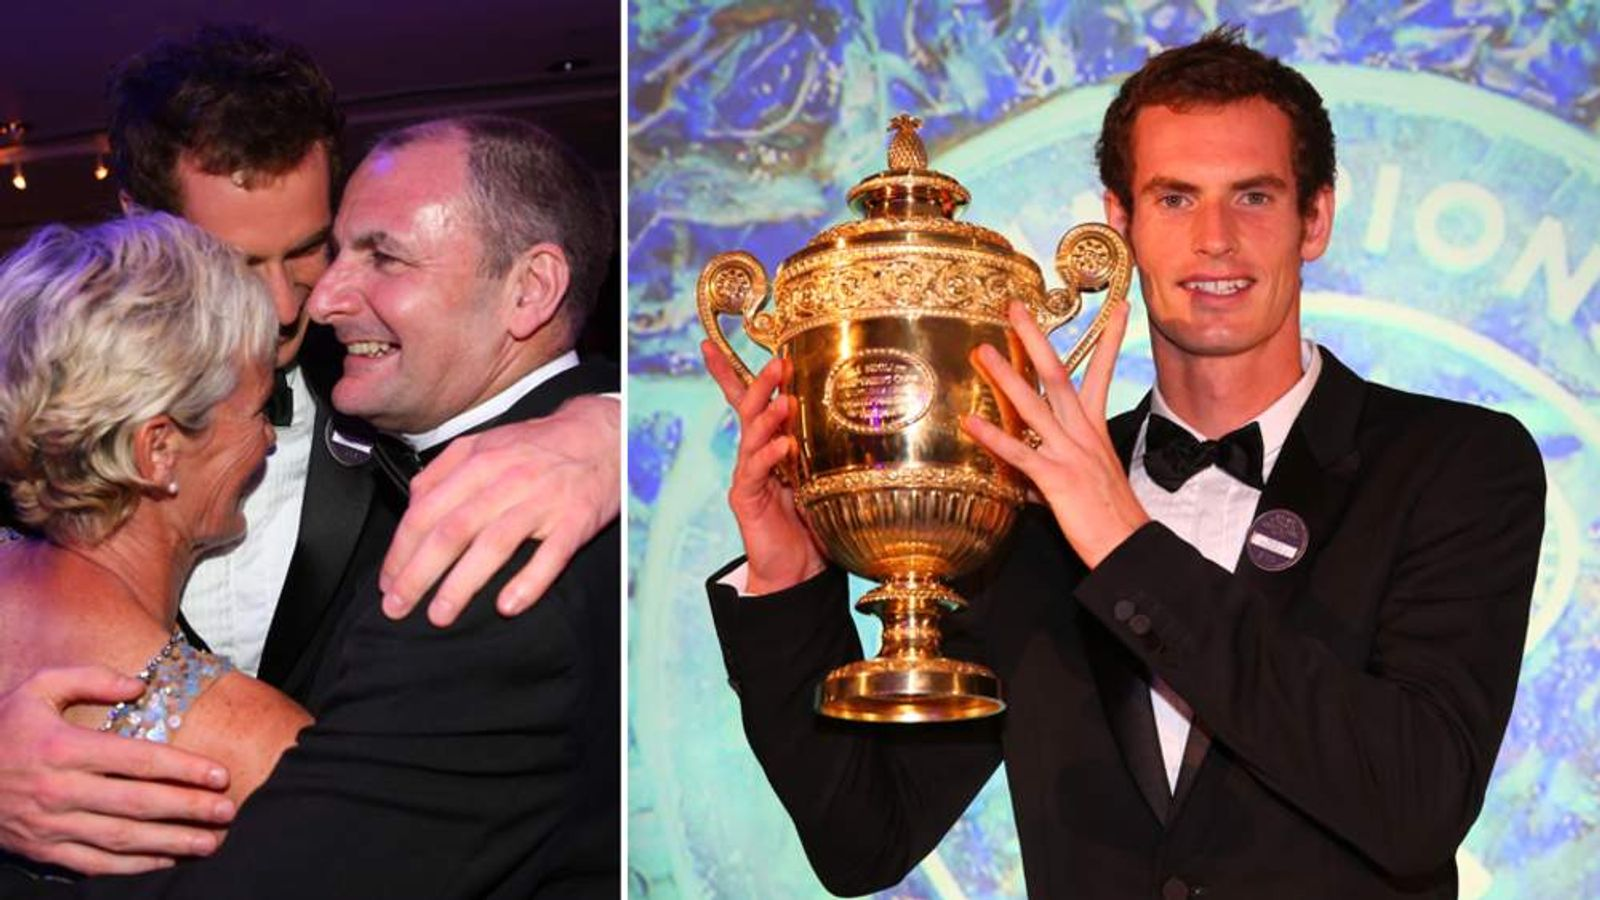 Andy Murray celebrates at a post-Wimbledon party